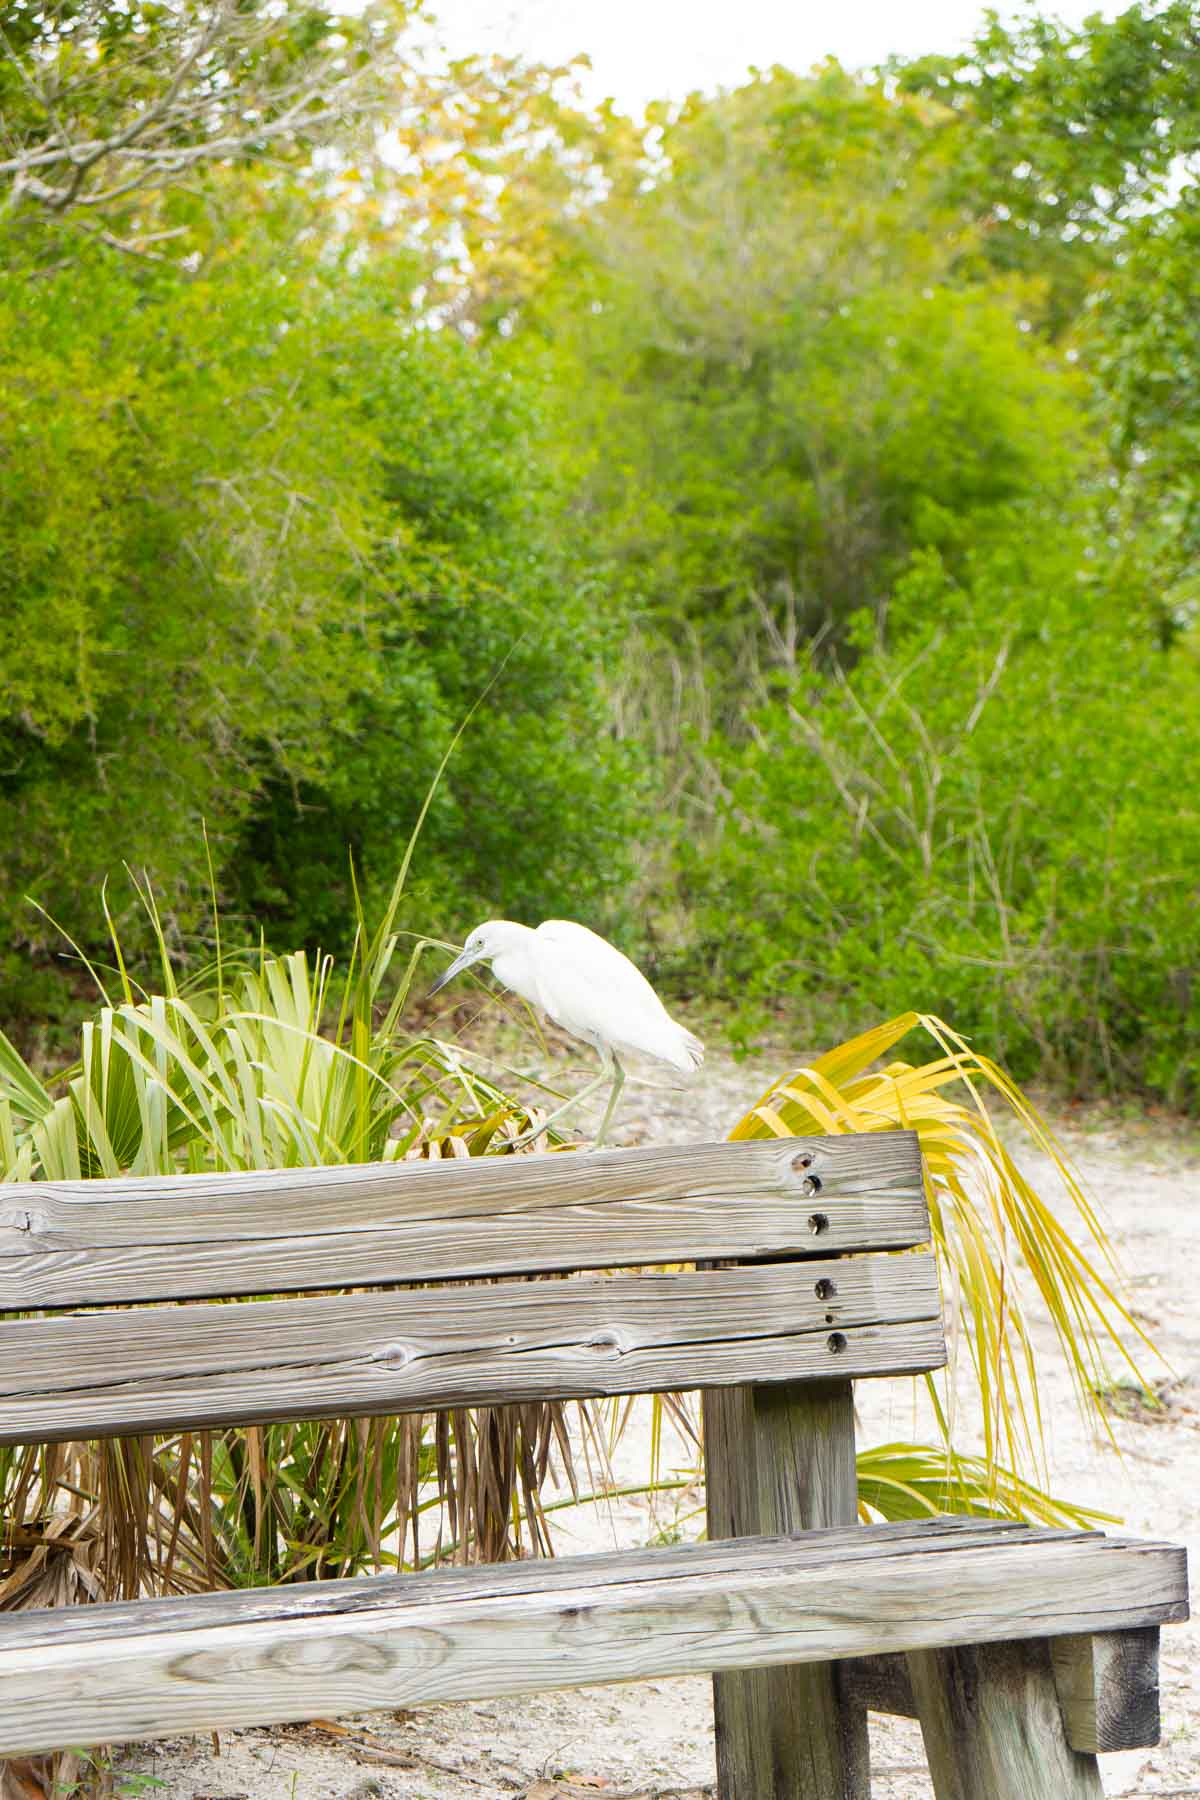 White bird sitting on a wooden bench